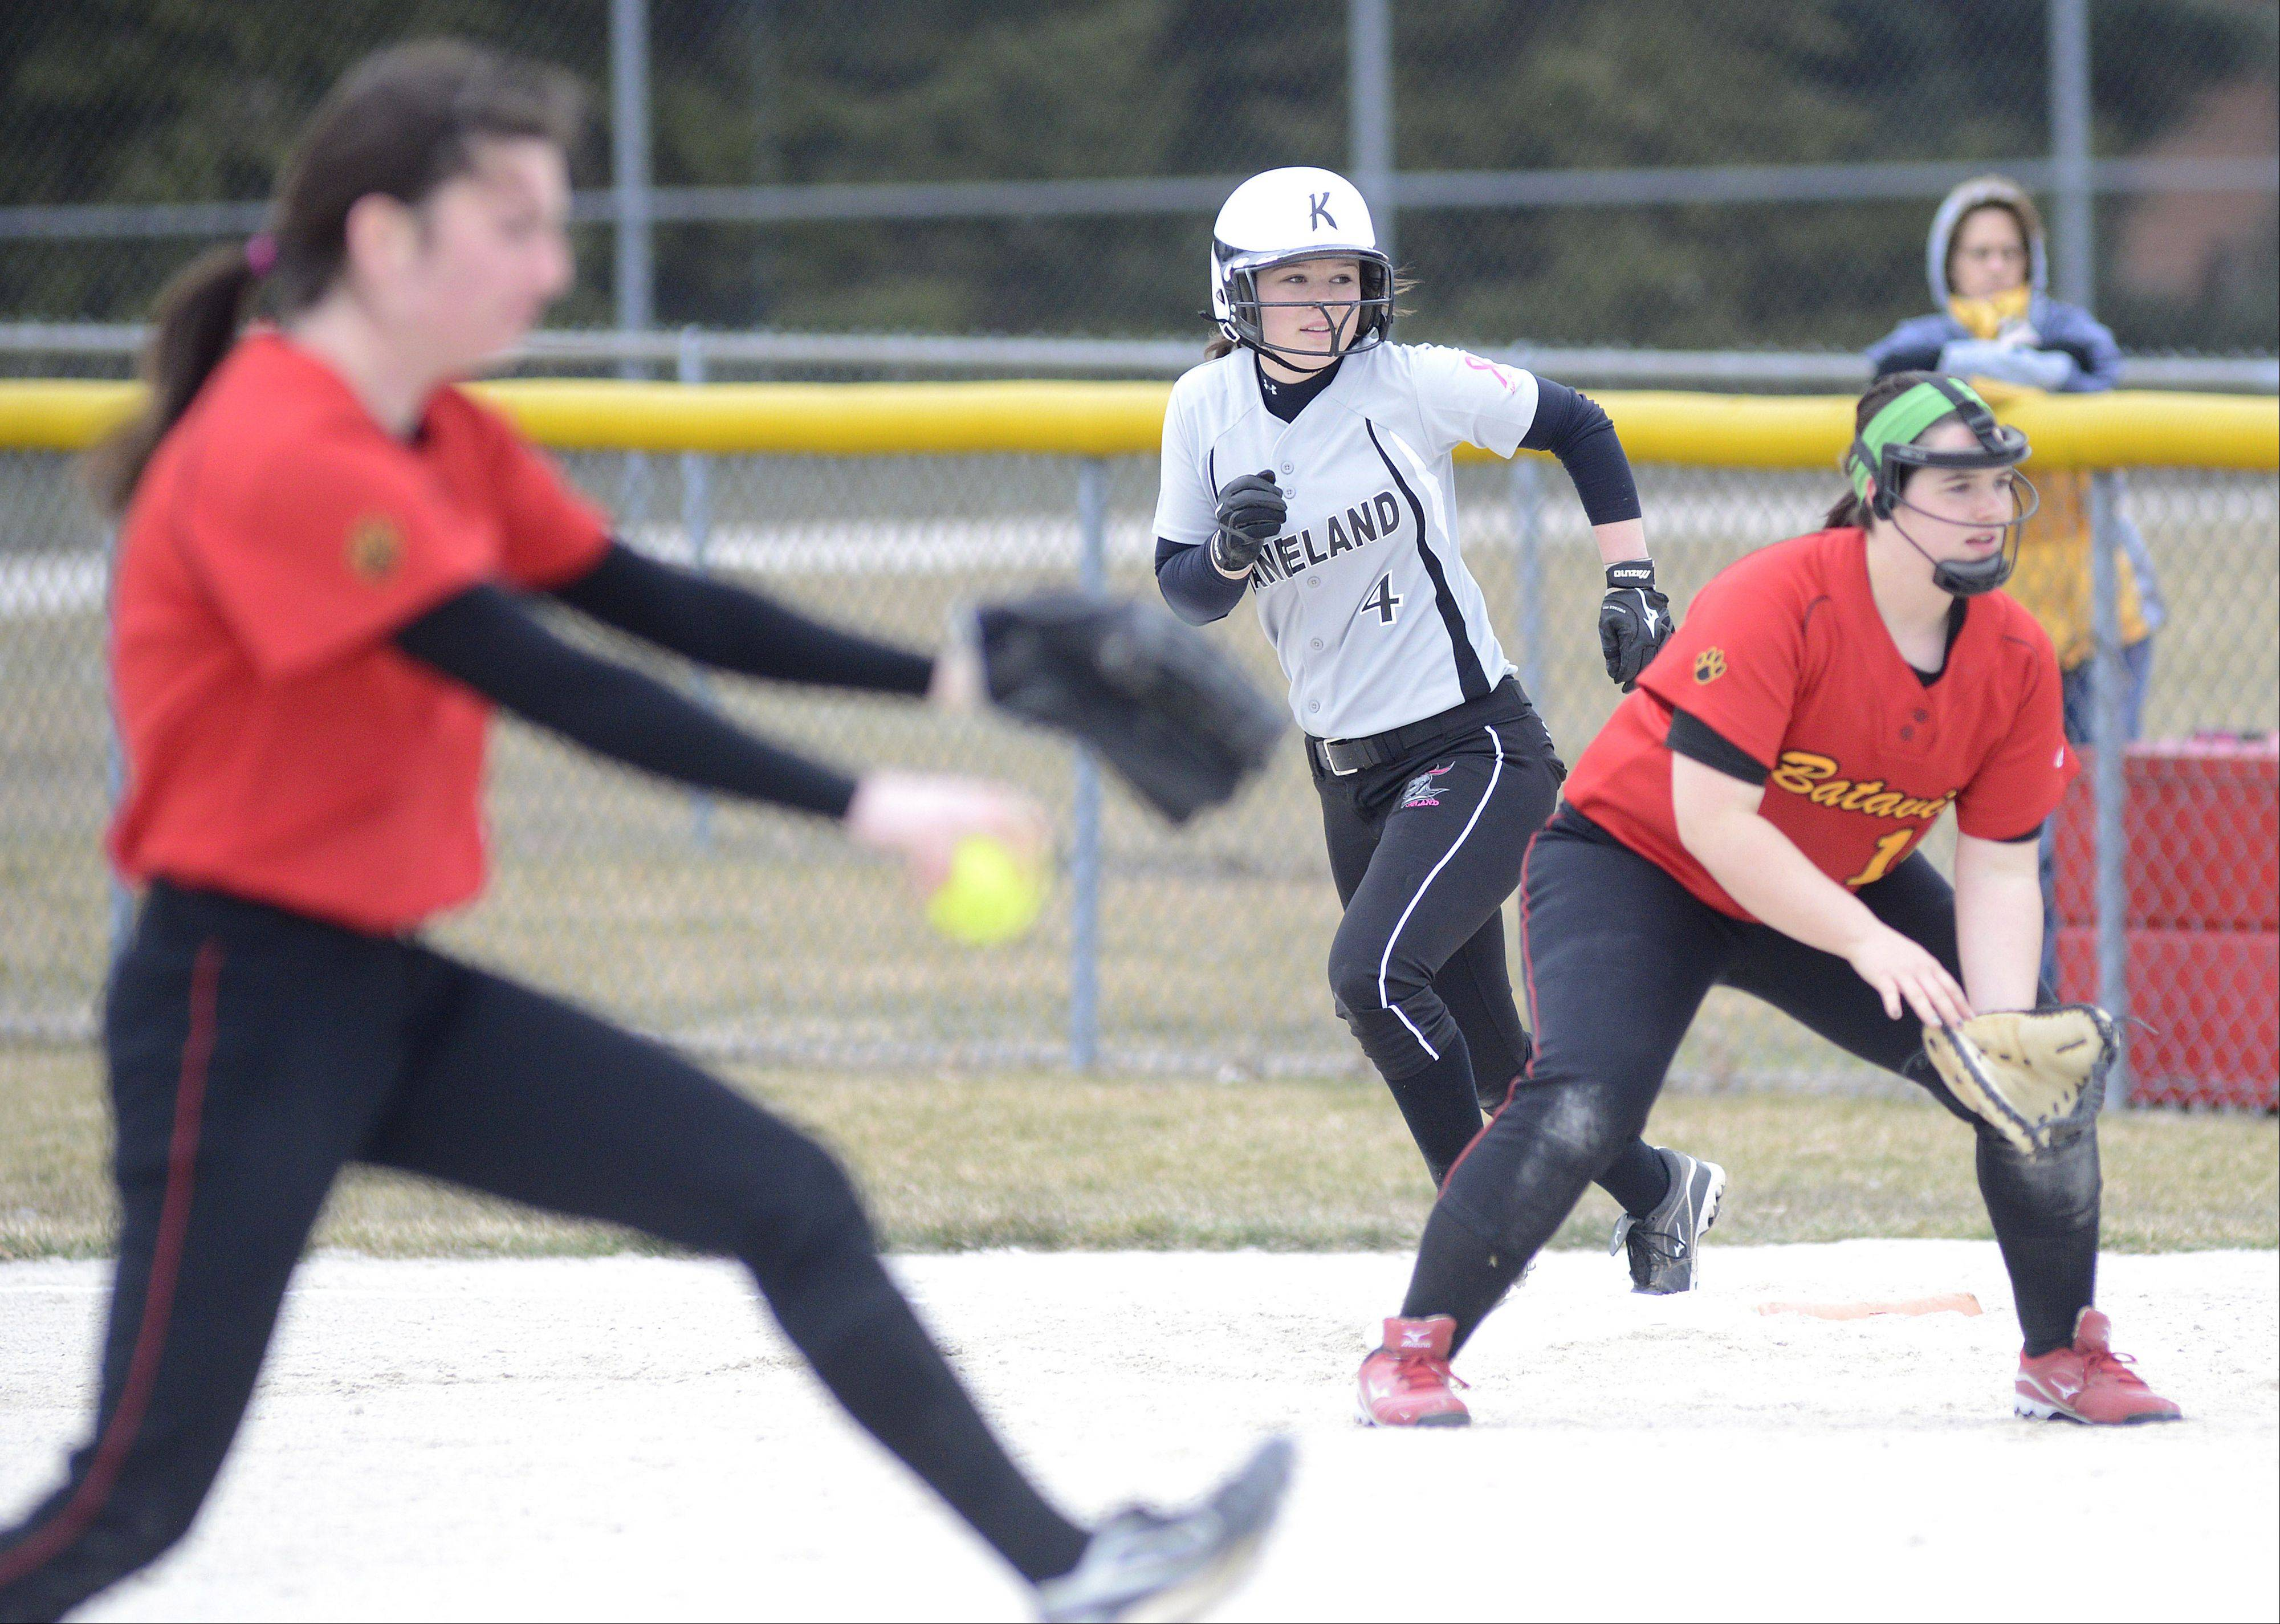 Kaneland's Allyson O'Herron leads off first base from Batavia's Natalie Offutt as Nicole Peercy pitches in the first inning on Saturday, April 6.